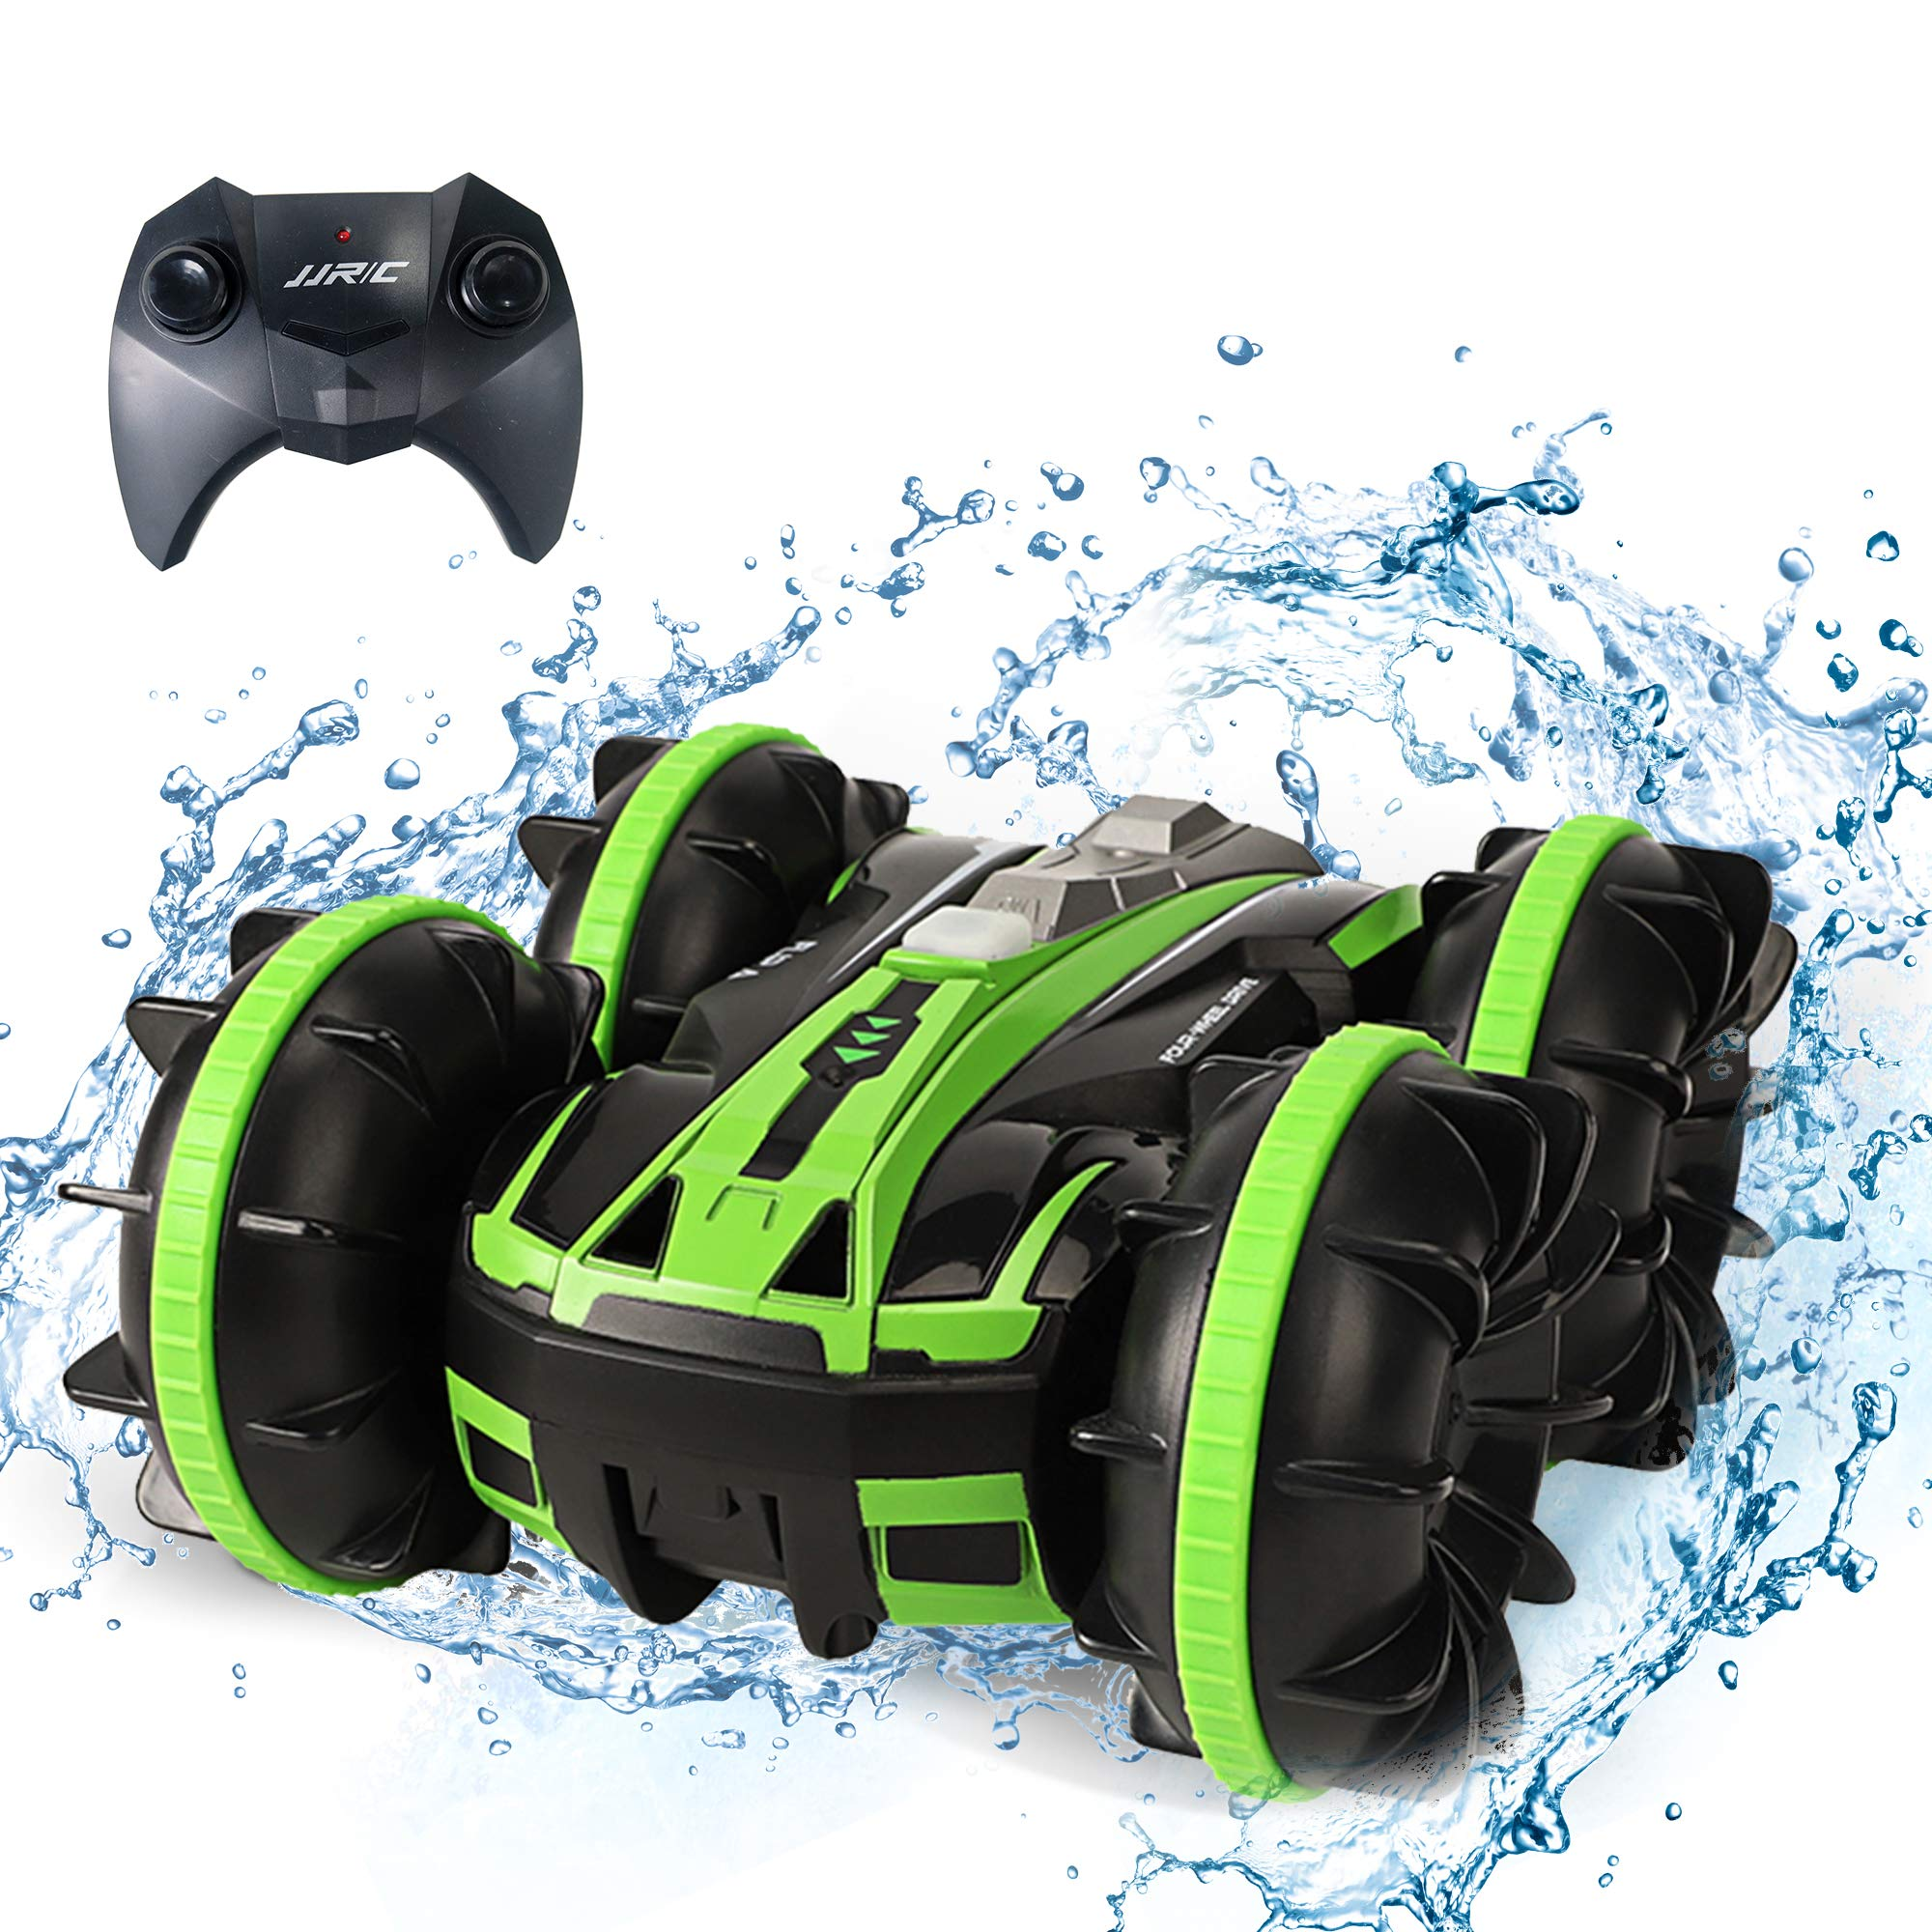 Amphibious RC Car Toys for Kids Remote Control Boat Car 4WD Off